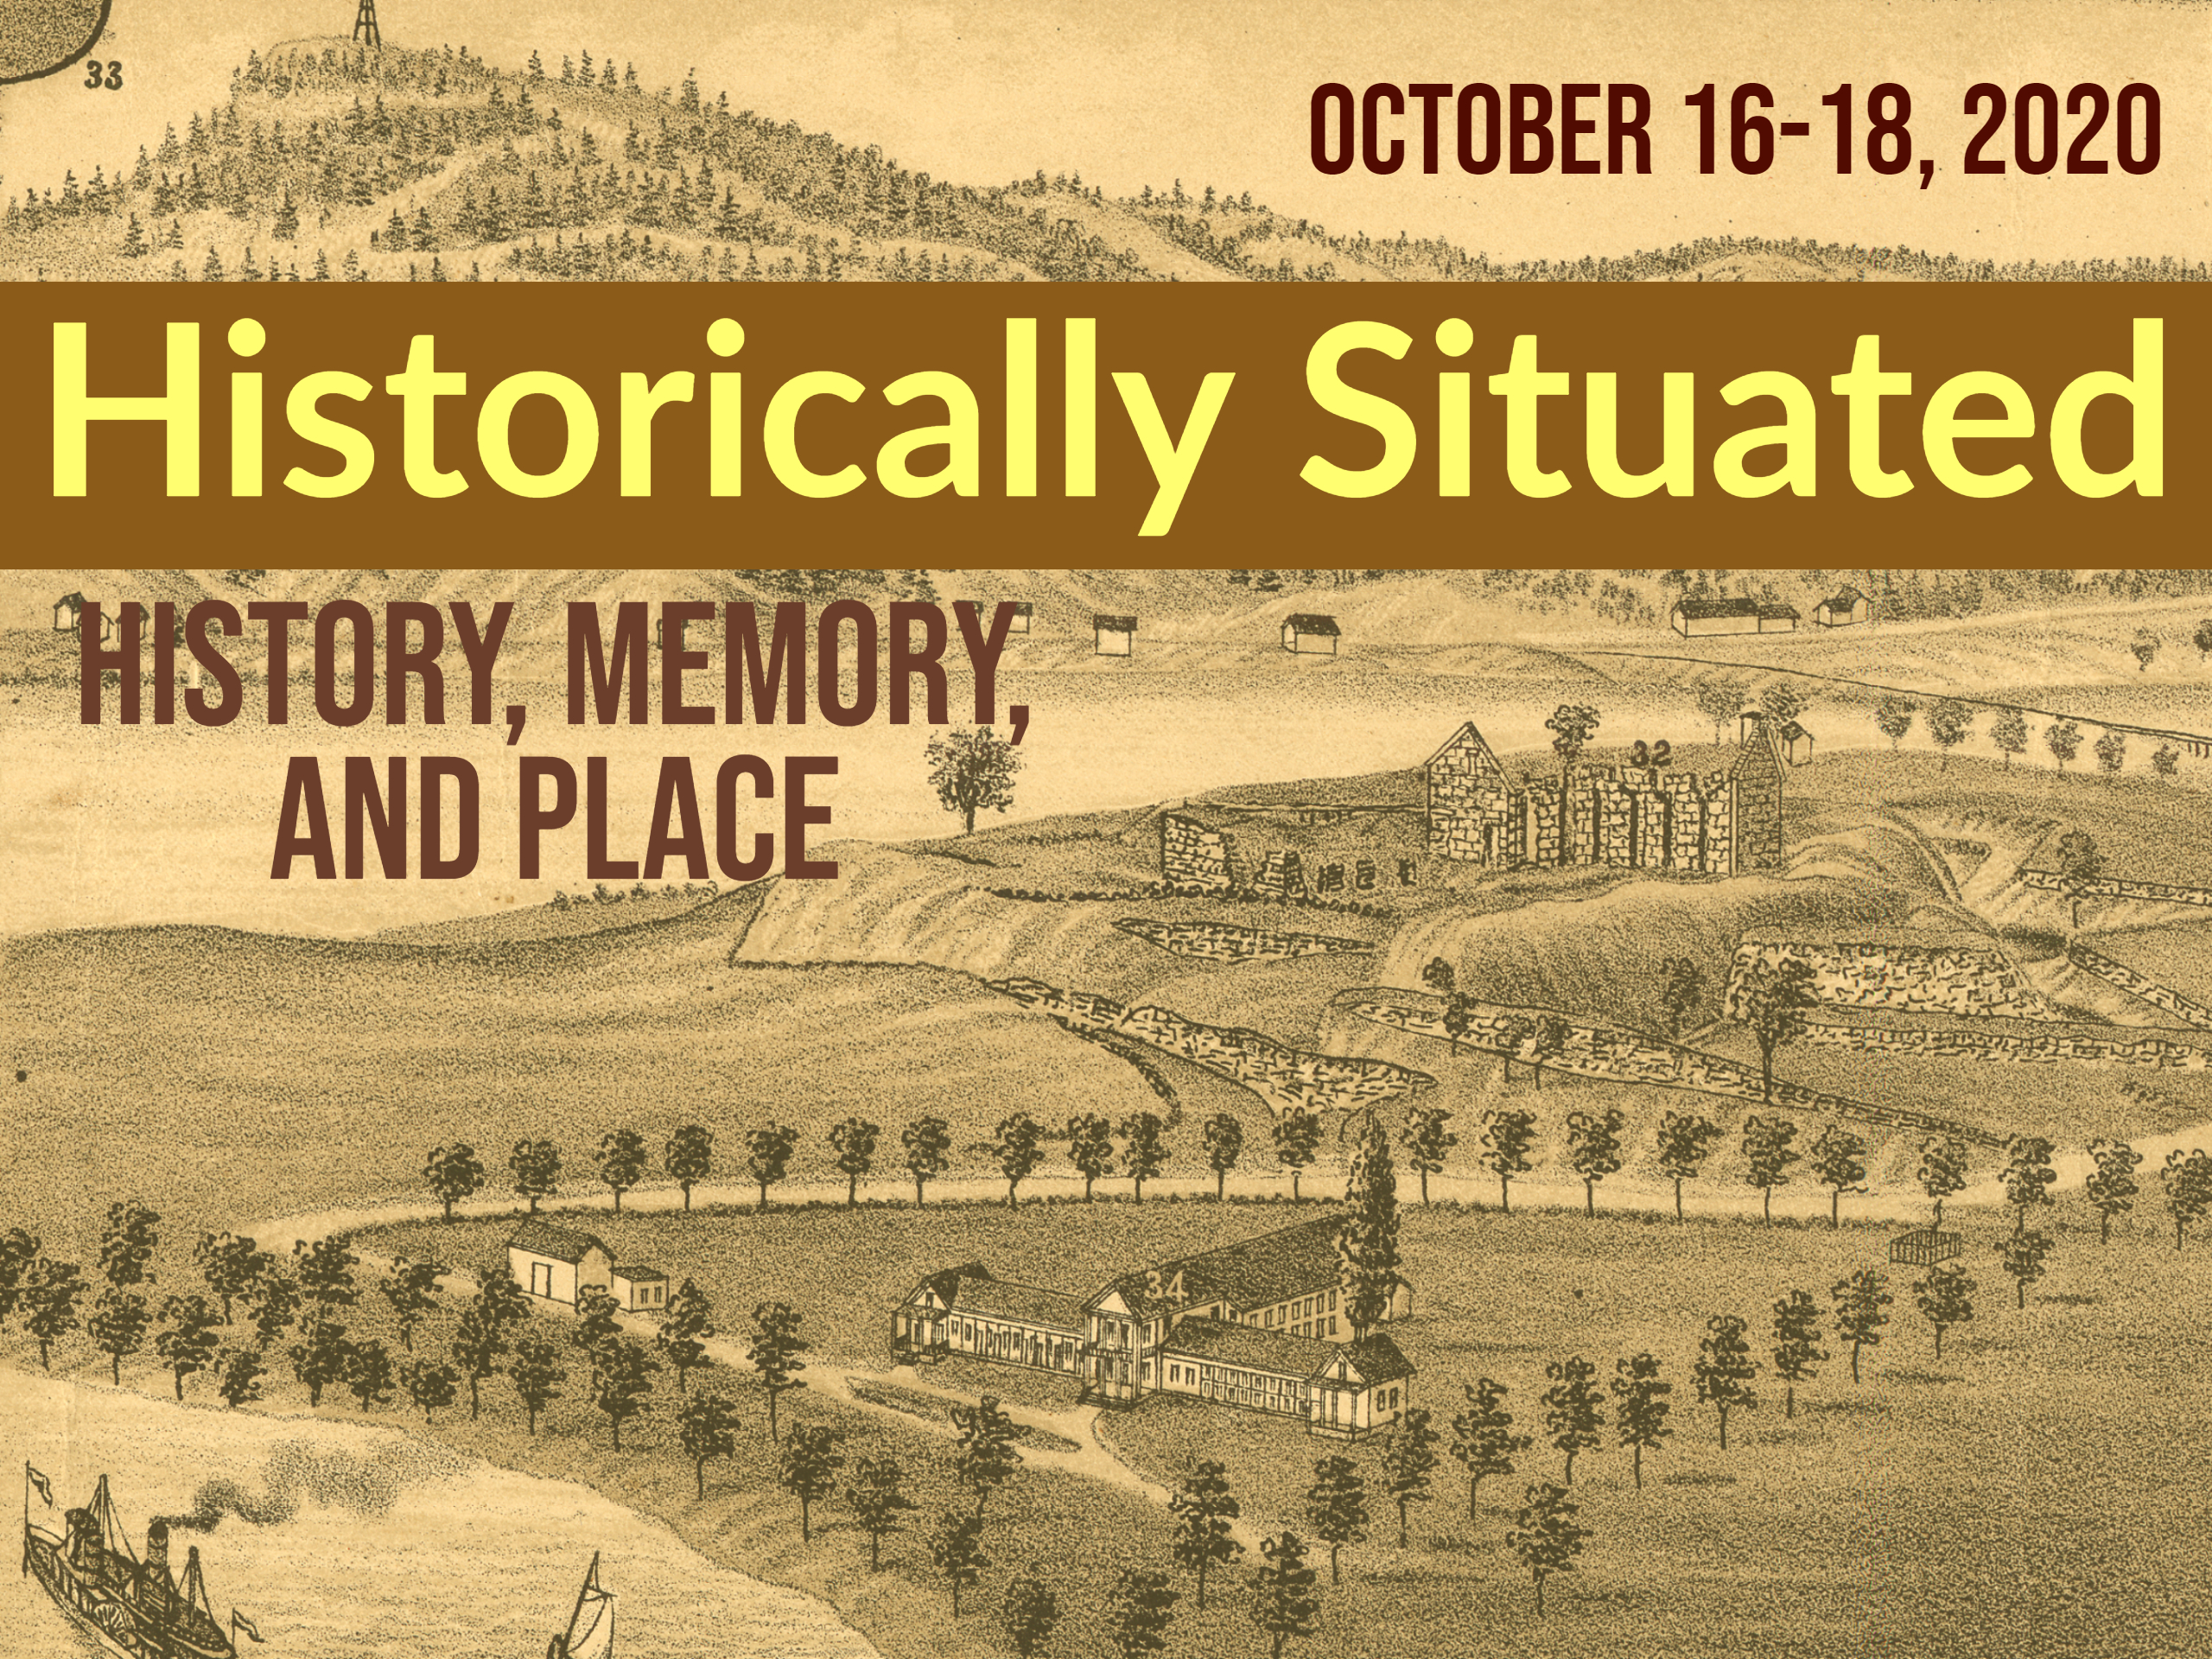 image of Fort Ticonderoga with text that says Historically Situated for History Conference in October 2020